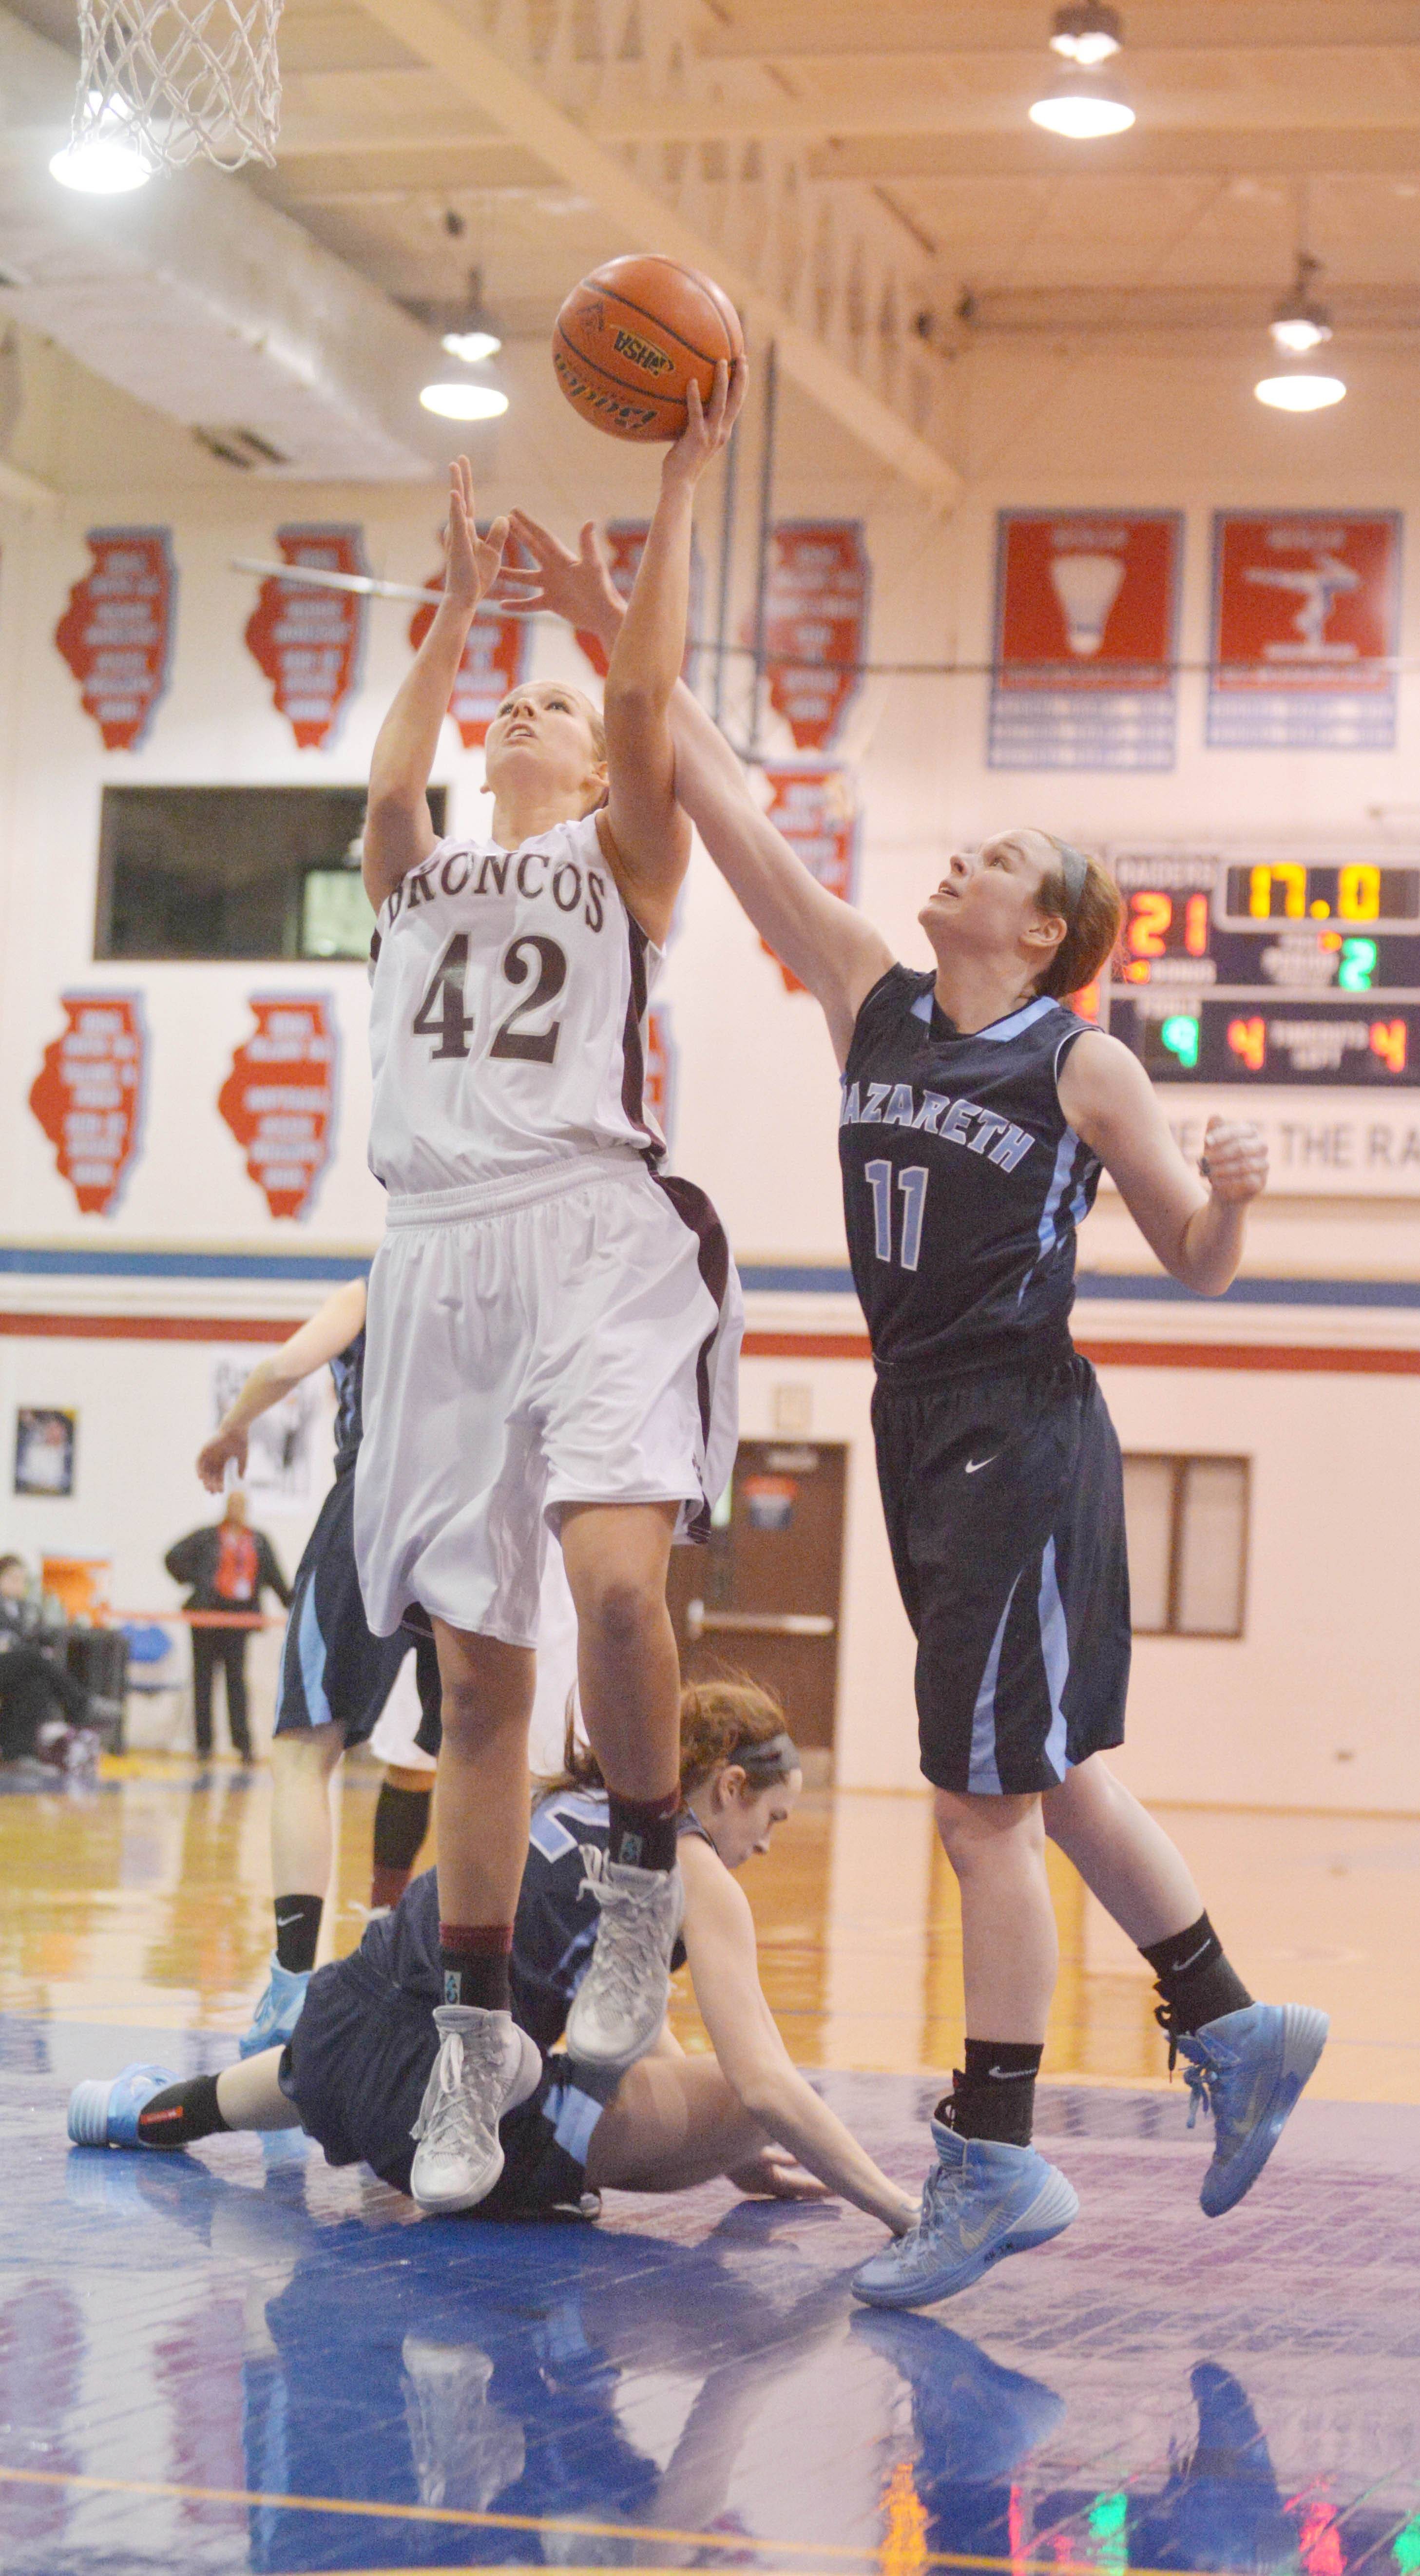 Claire Jakaitis of Montini takes a shot as Mary Clare Harrington of Nazareth blocks.